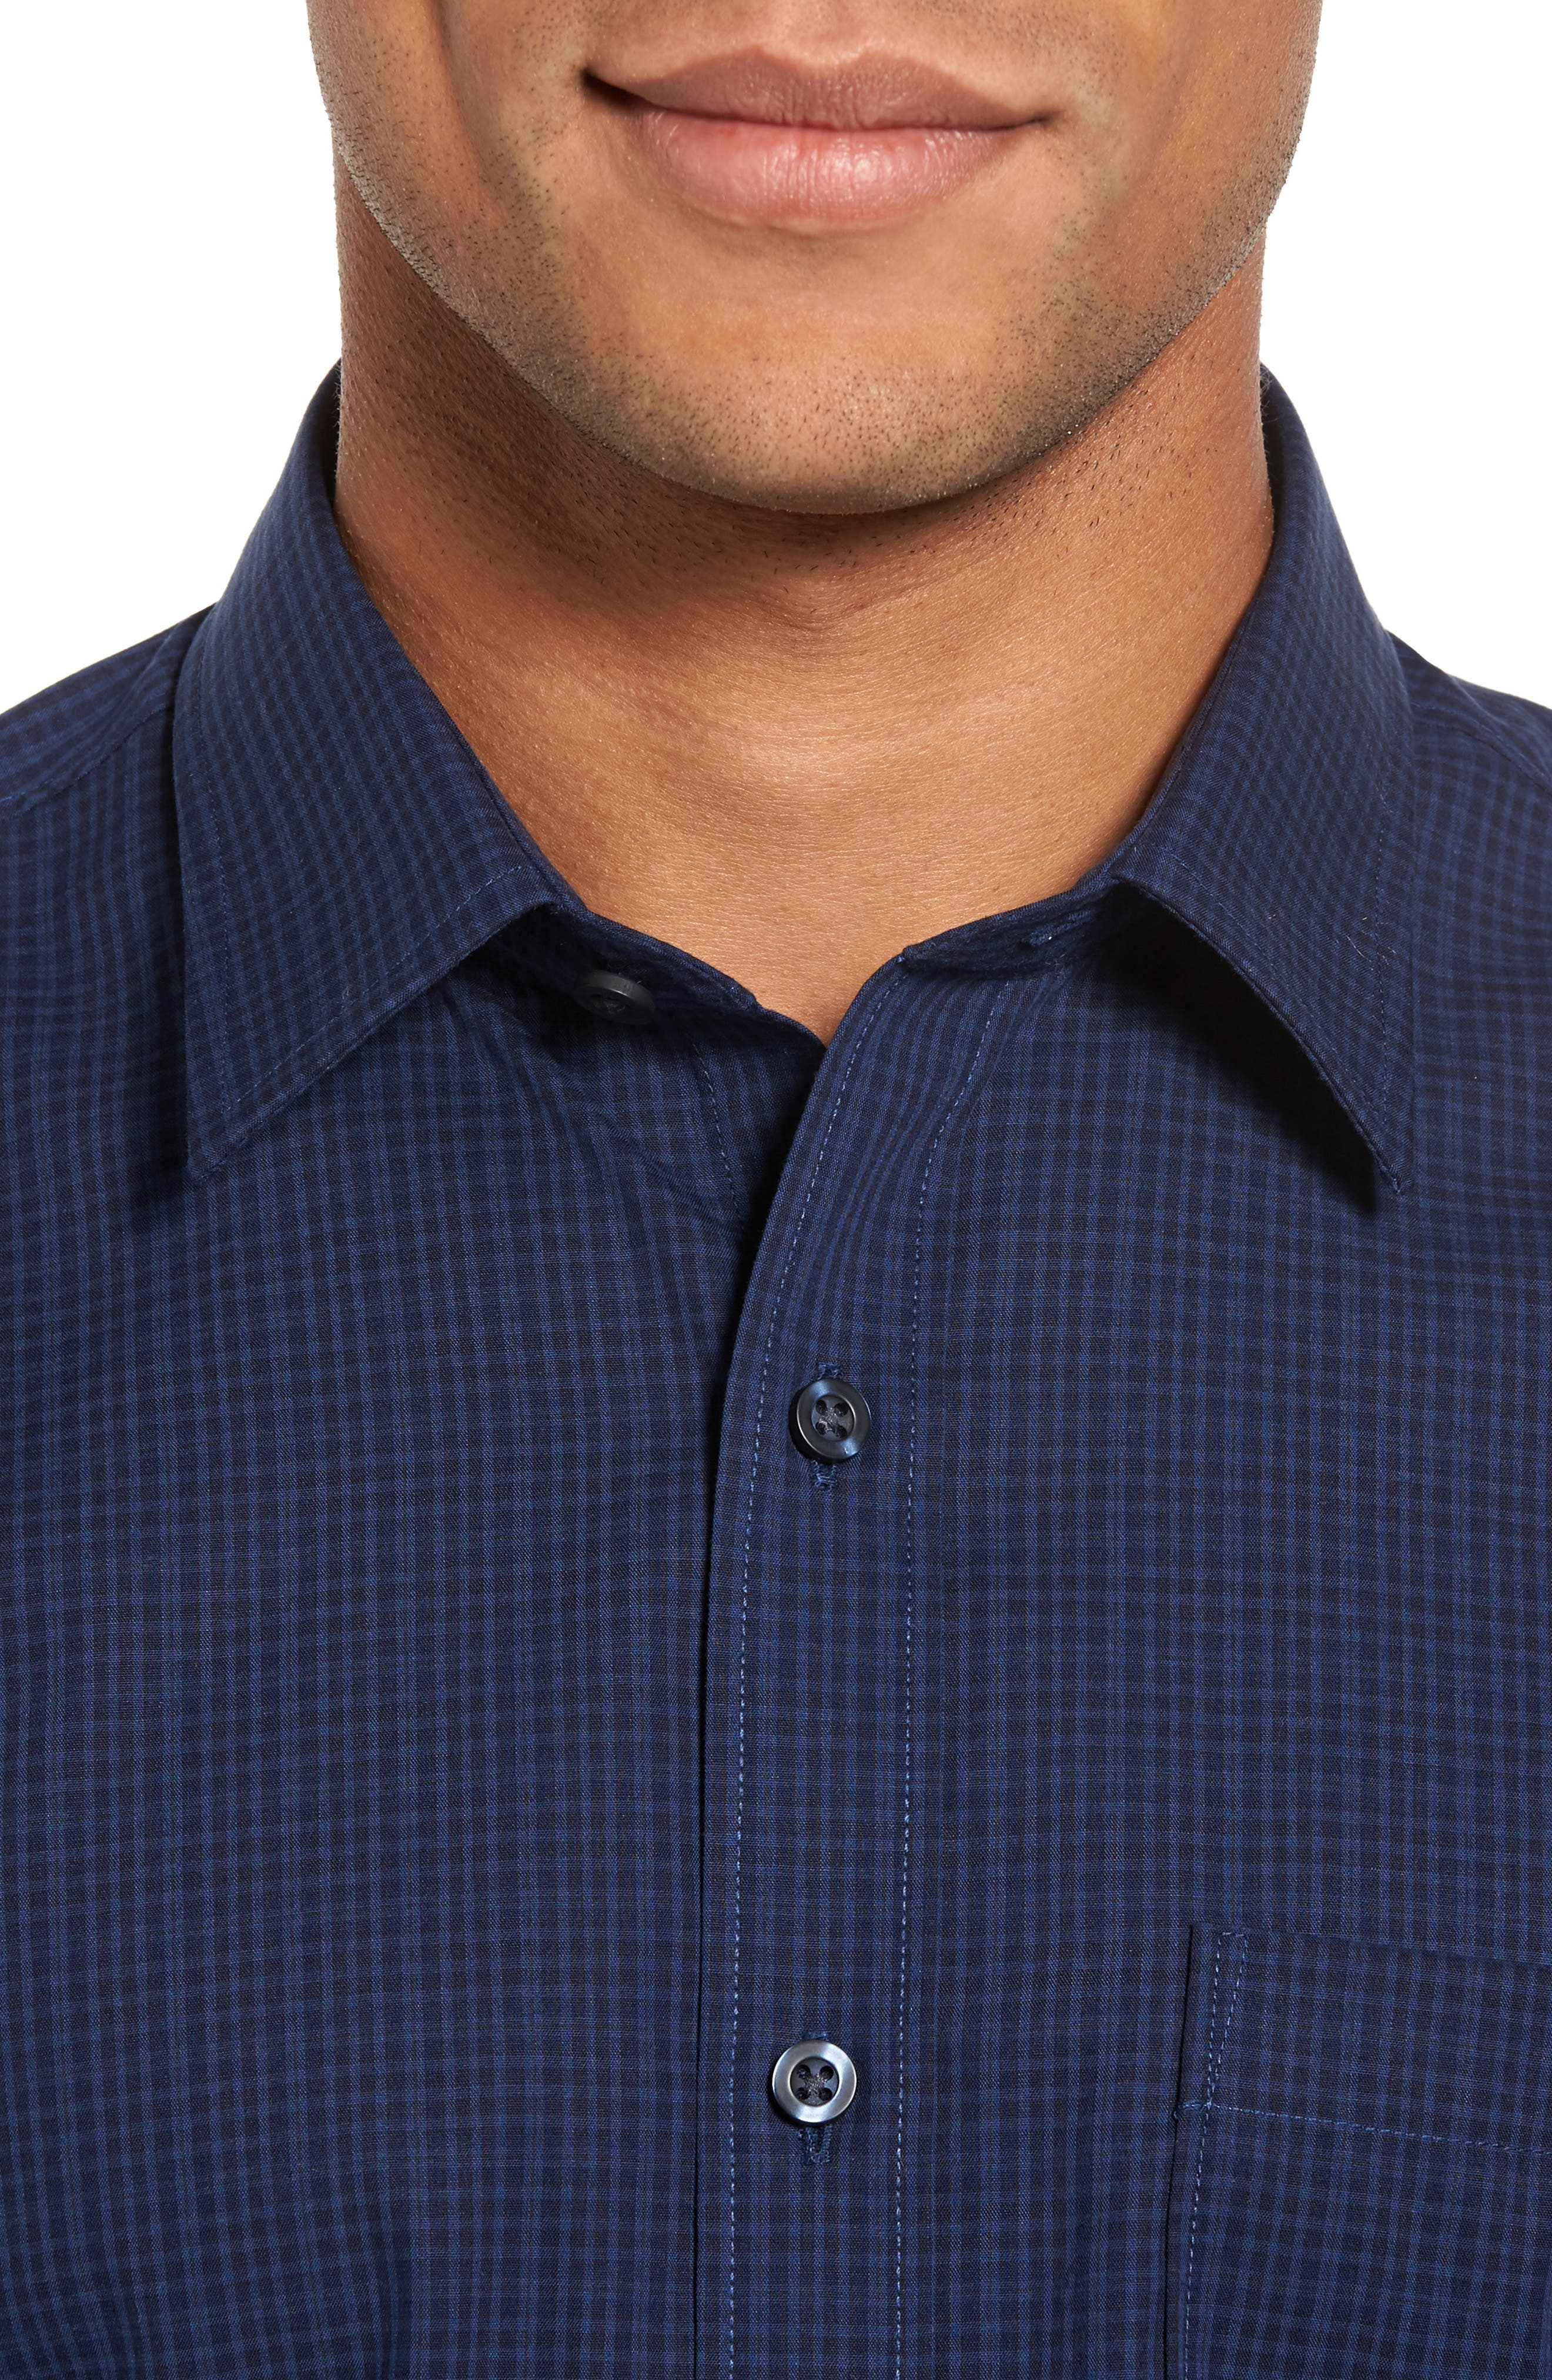 Trim Fit Non-Iron Mini Check Sport Shirt,                             Alternate thumbnail 4, color,                             Navy Iris Blue Mini Check